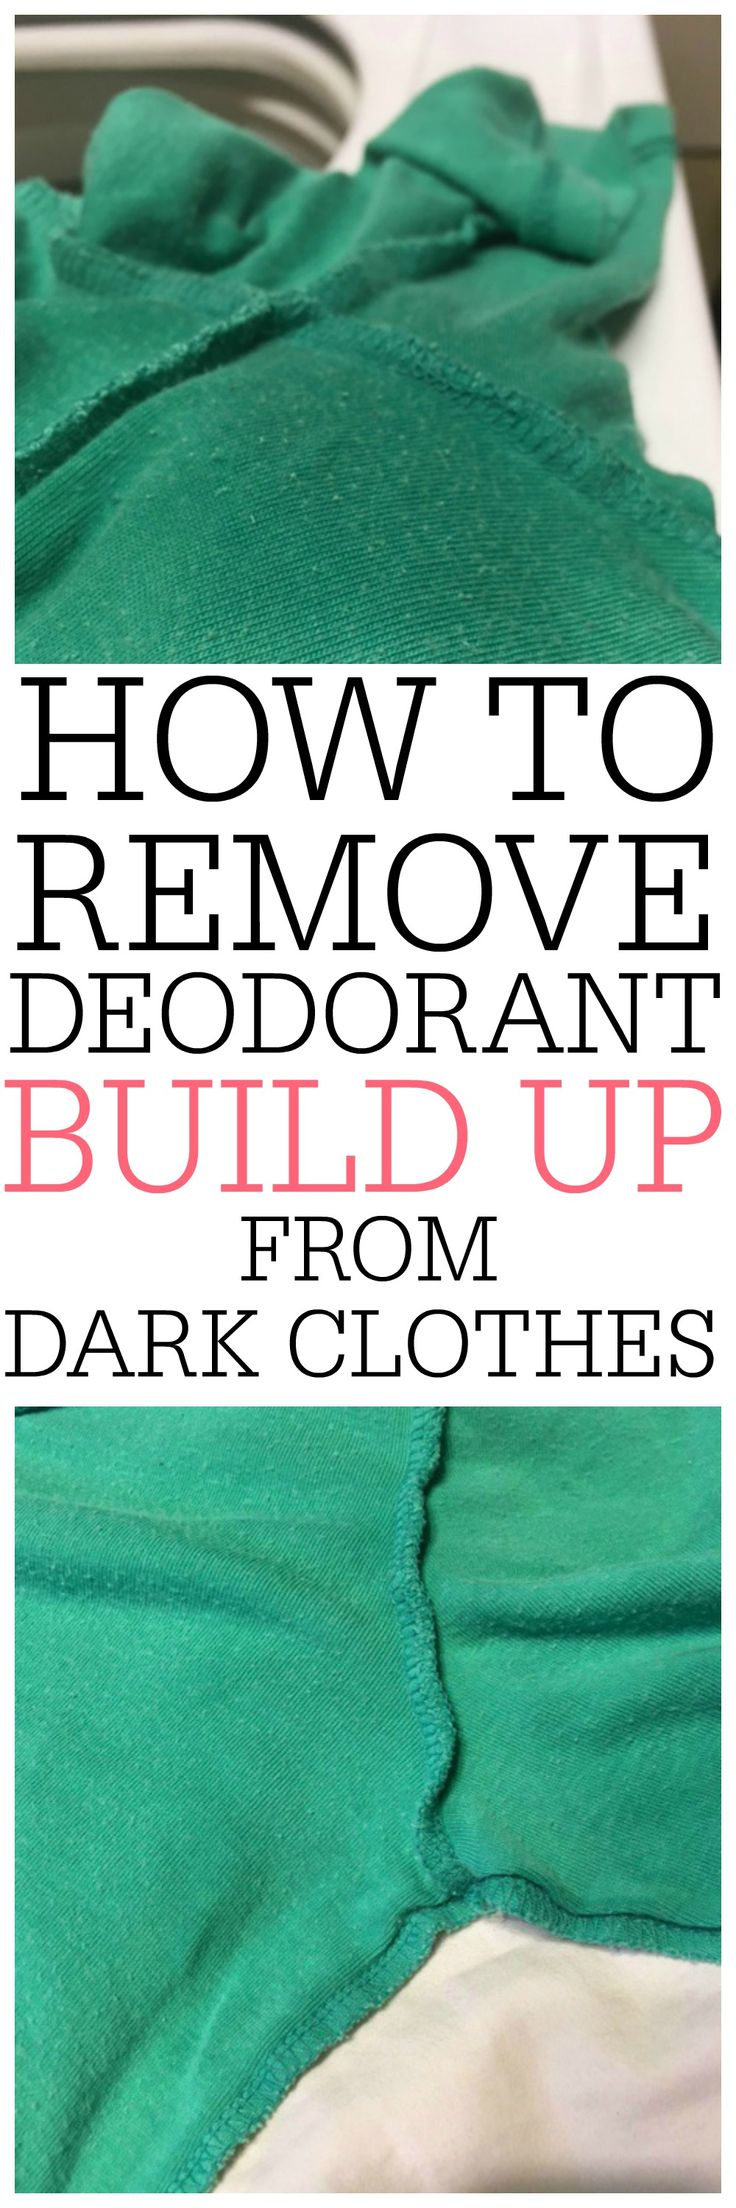 Tired of deodorant build up on your shirts? Check out how to remove deodorant build up from dark clothes. It's so easy to do!